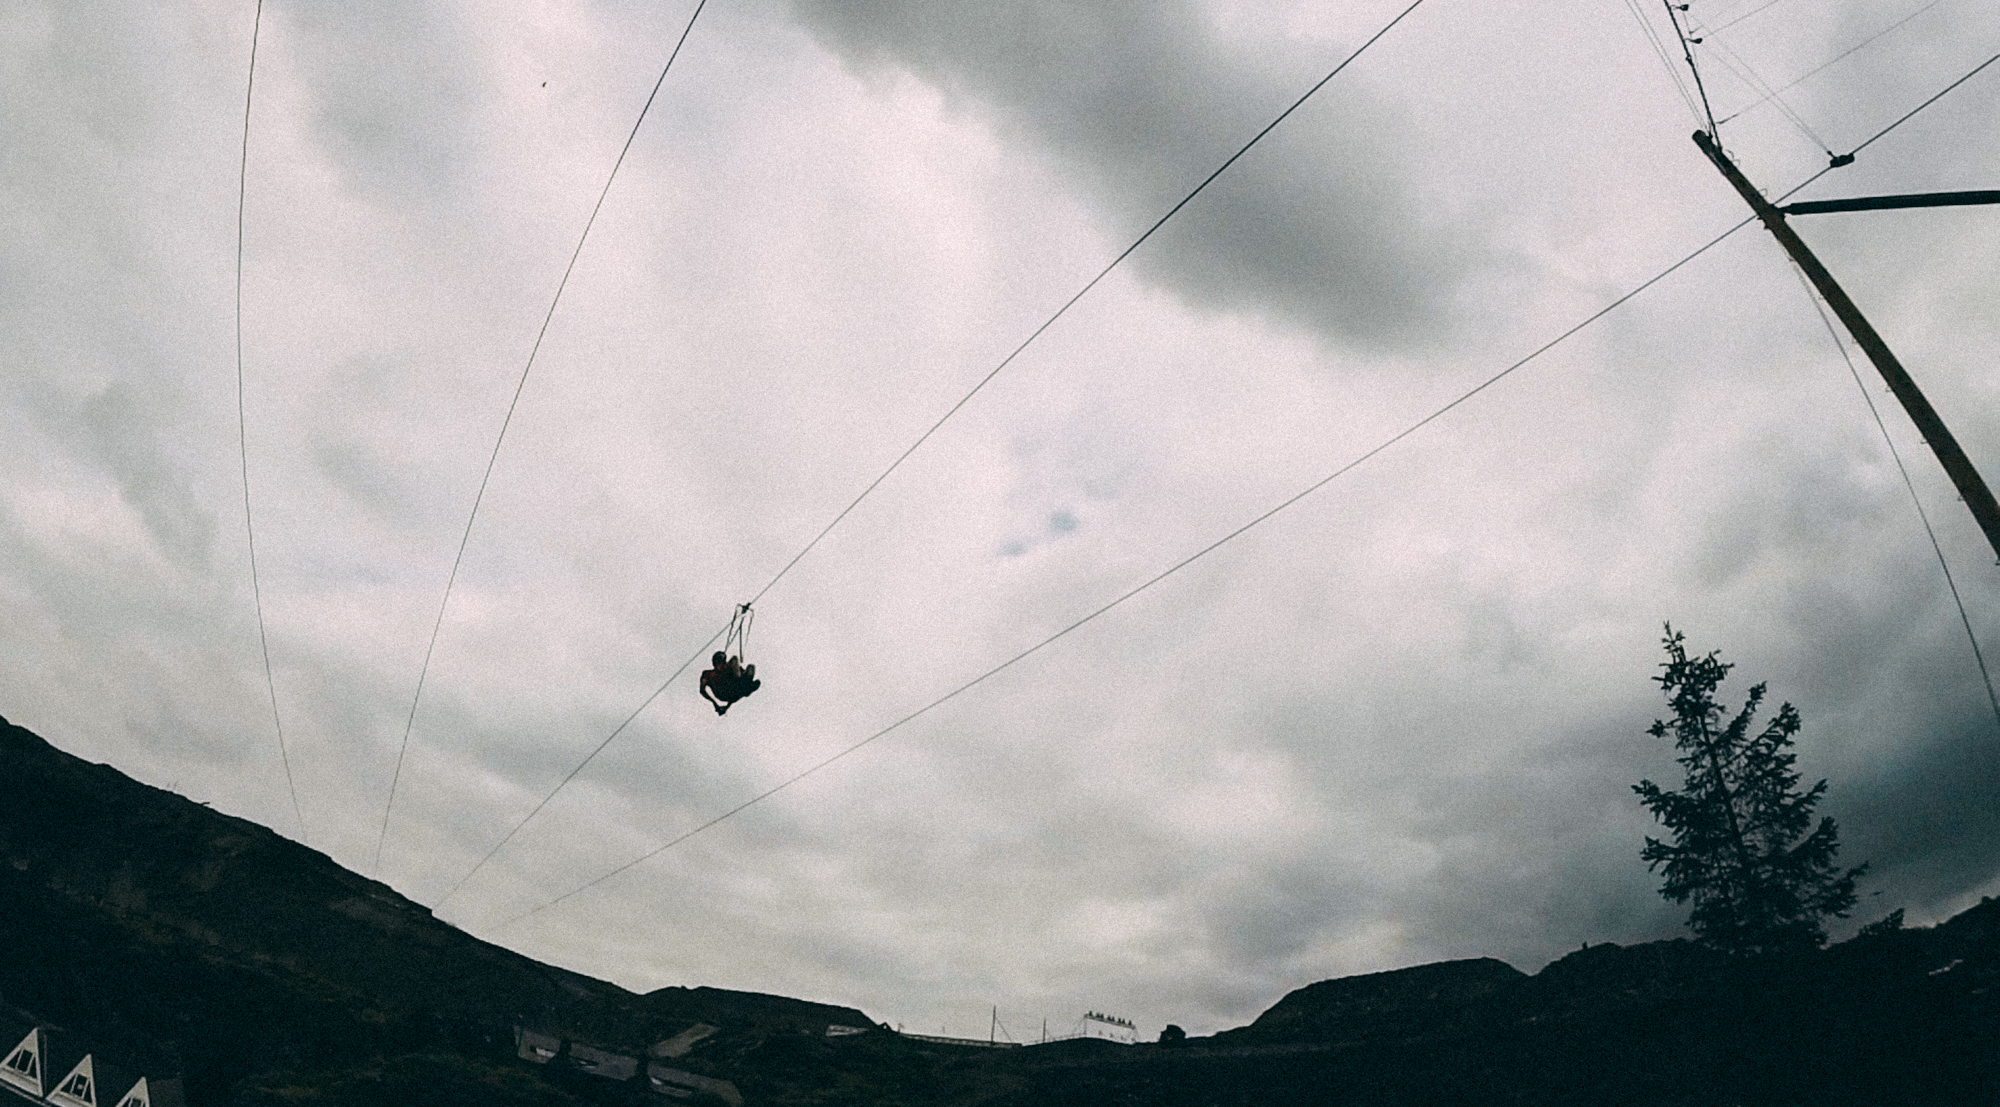 WALES Instructor On Zip Line.jpg